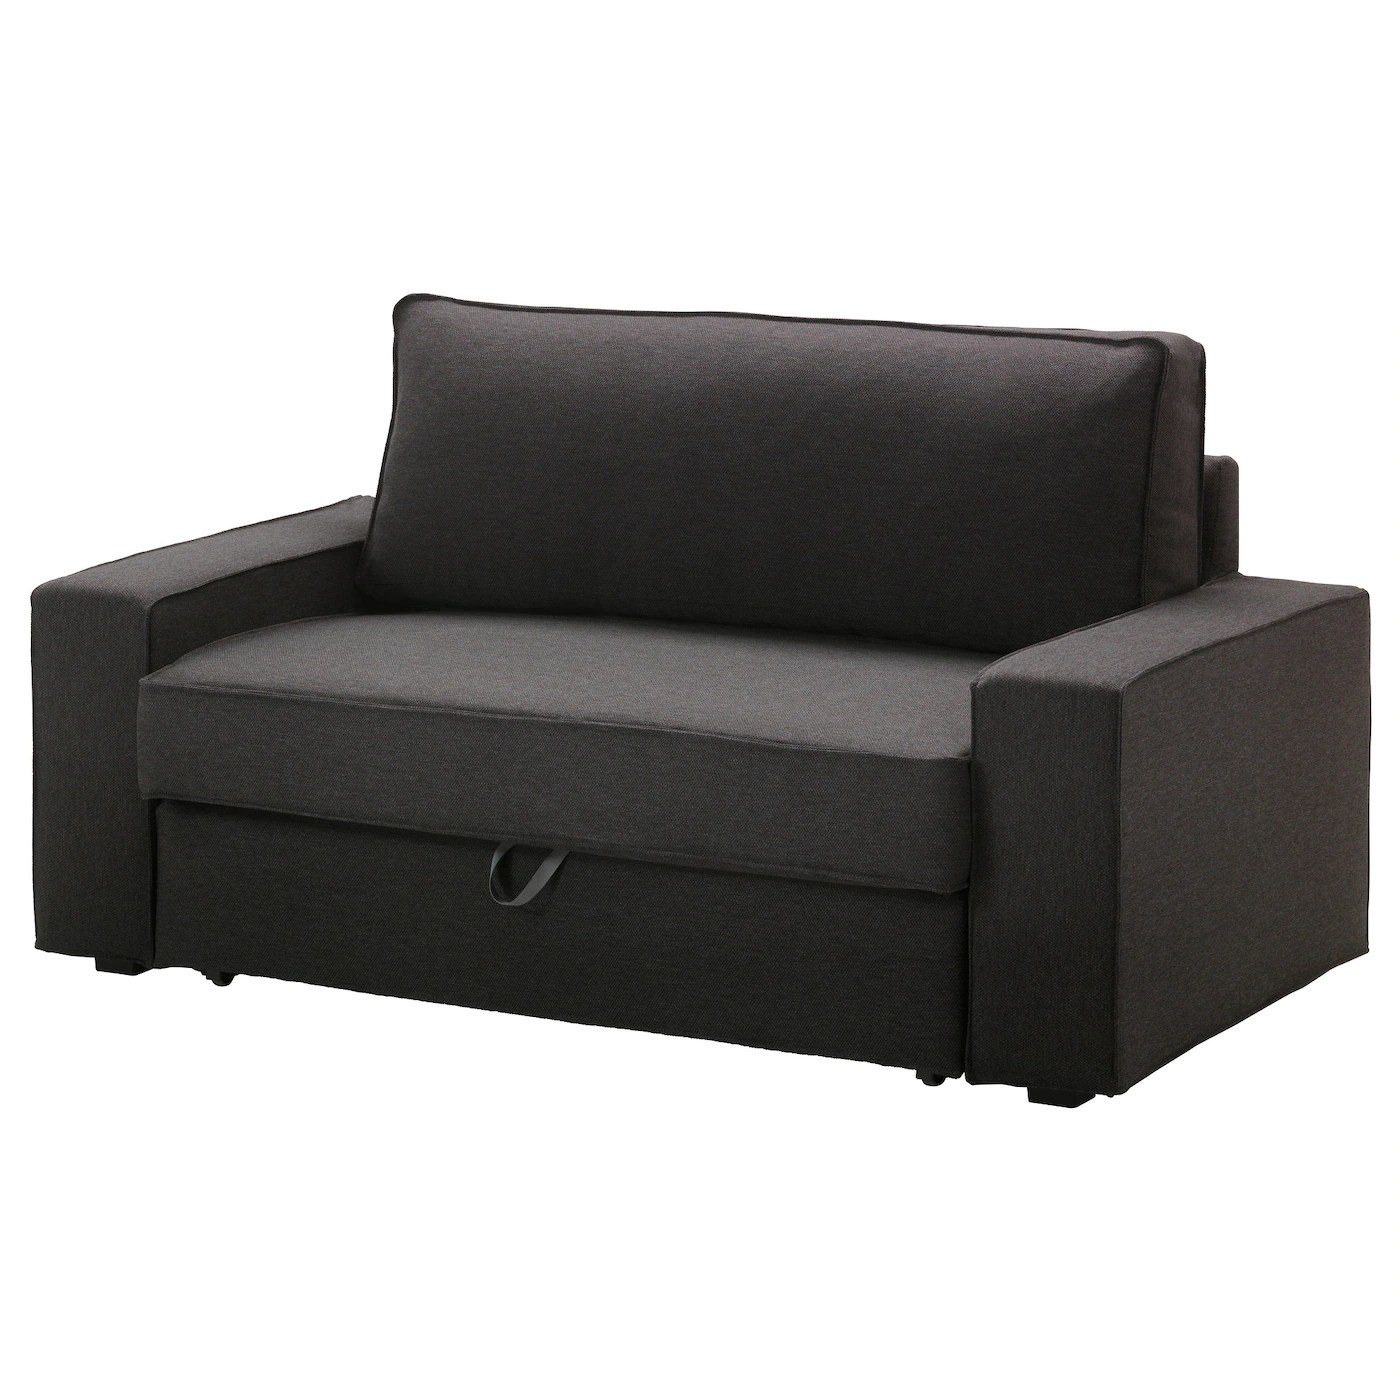 Bettsofa Kika Vilasund Two Seat Sofa Bed Dansbo Dark Grey Ikea